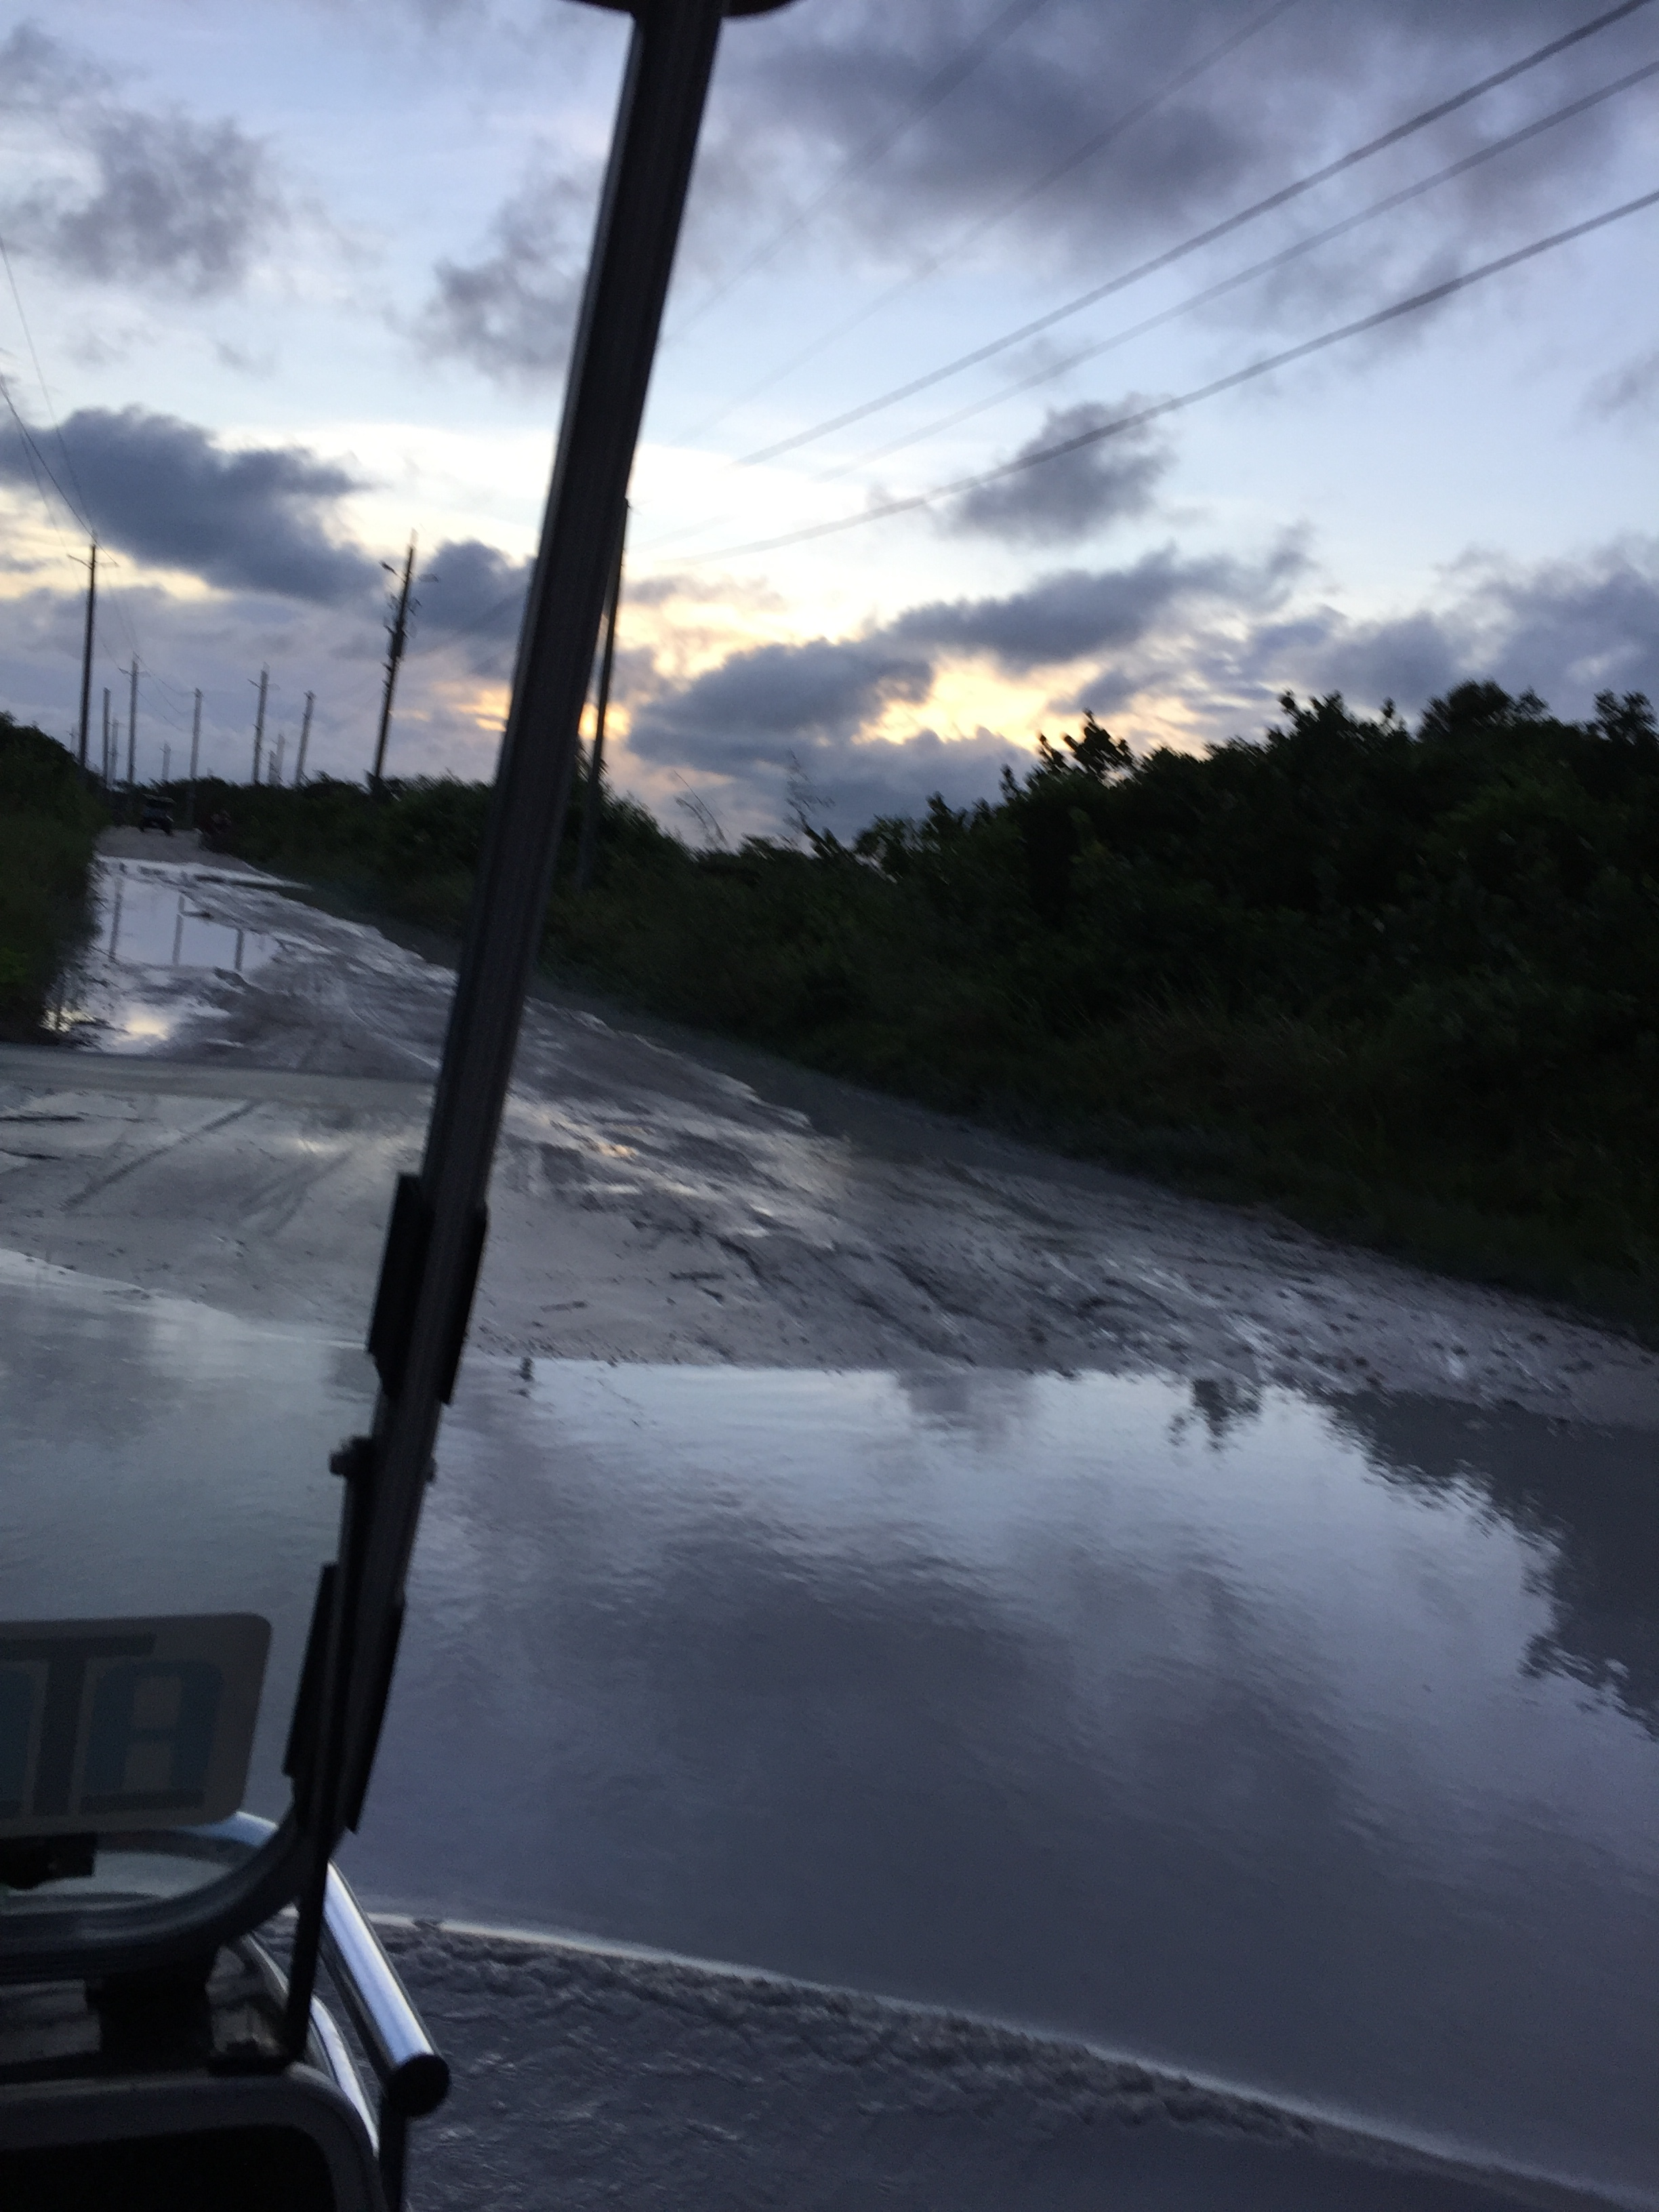 Our house was about 5 miles from town, over roads that looked like this. (Caye Ambergris, Belize; Nov 2016)